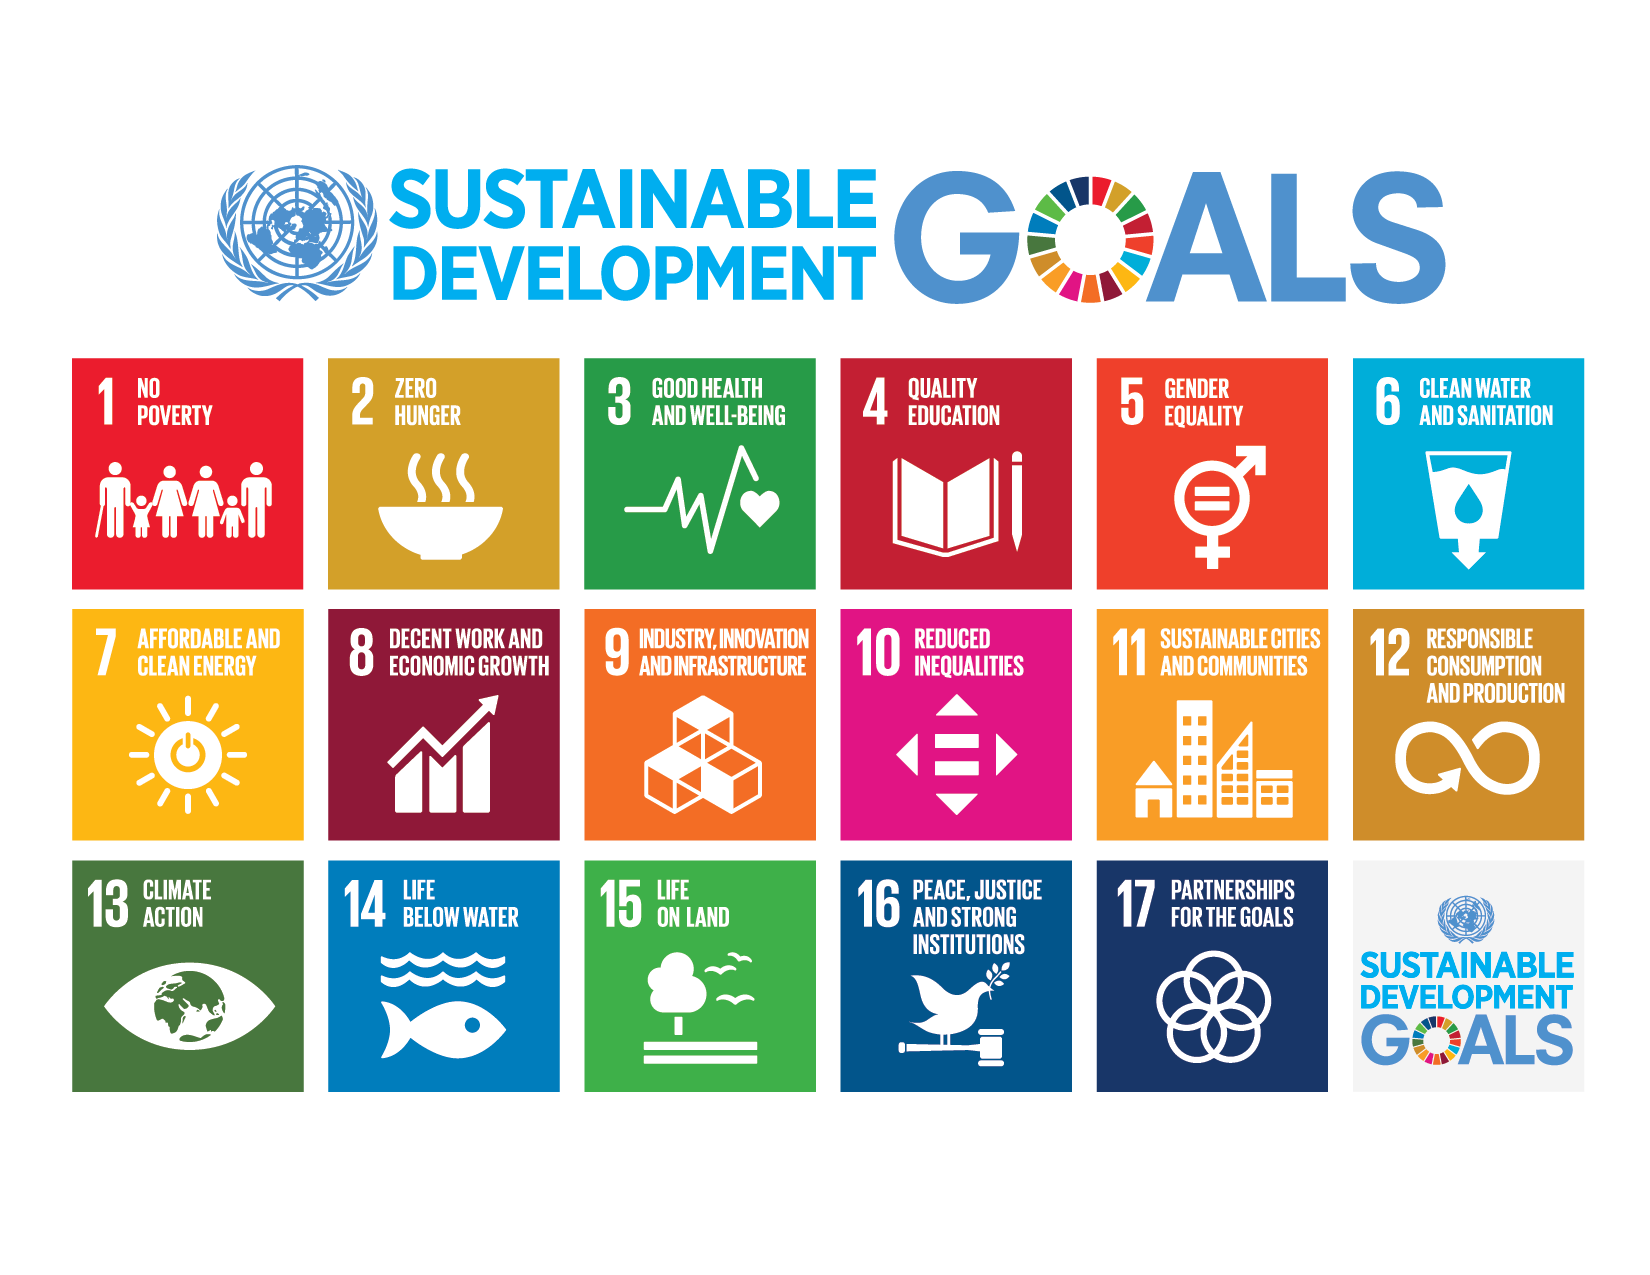 http://files.b-token.co.uk/files/257/original/E_2018_SDG_Poster_with_UN_emblem.png?1540196515